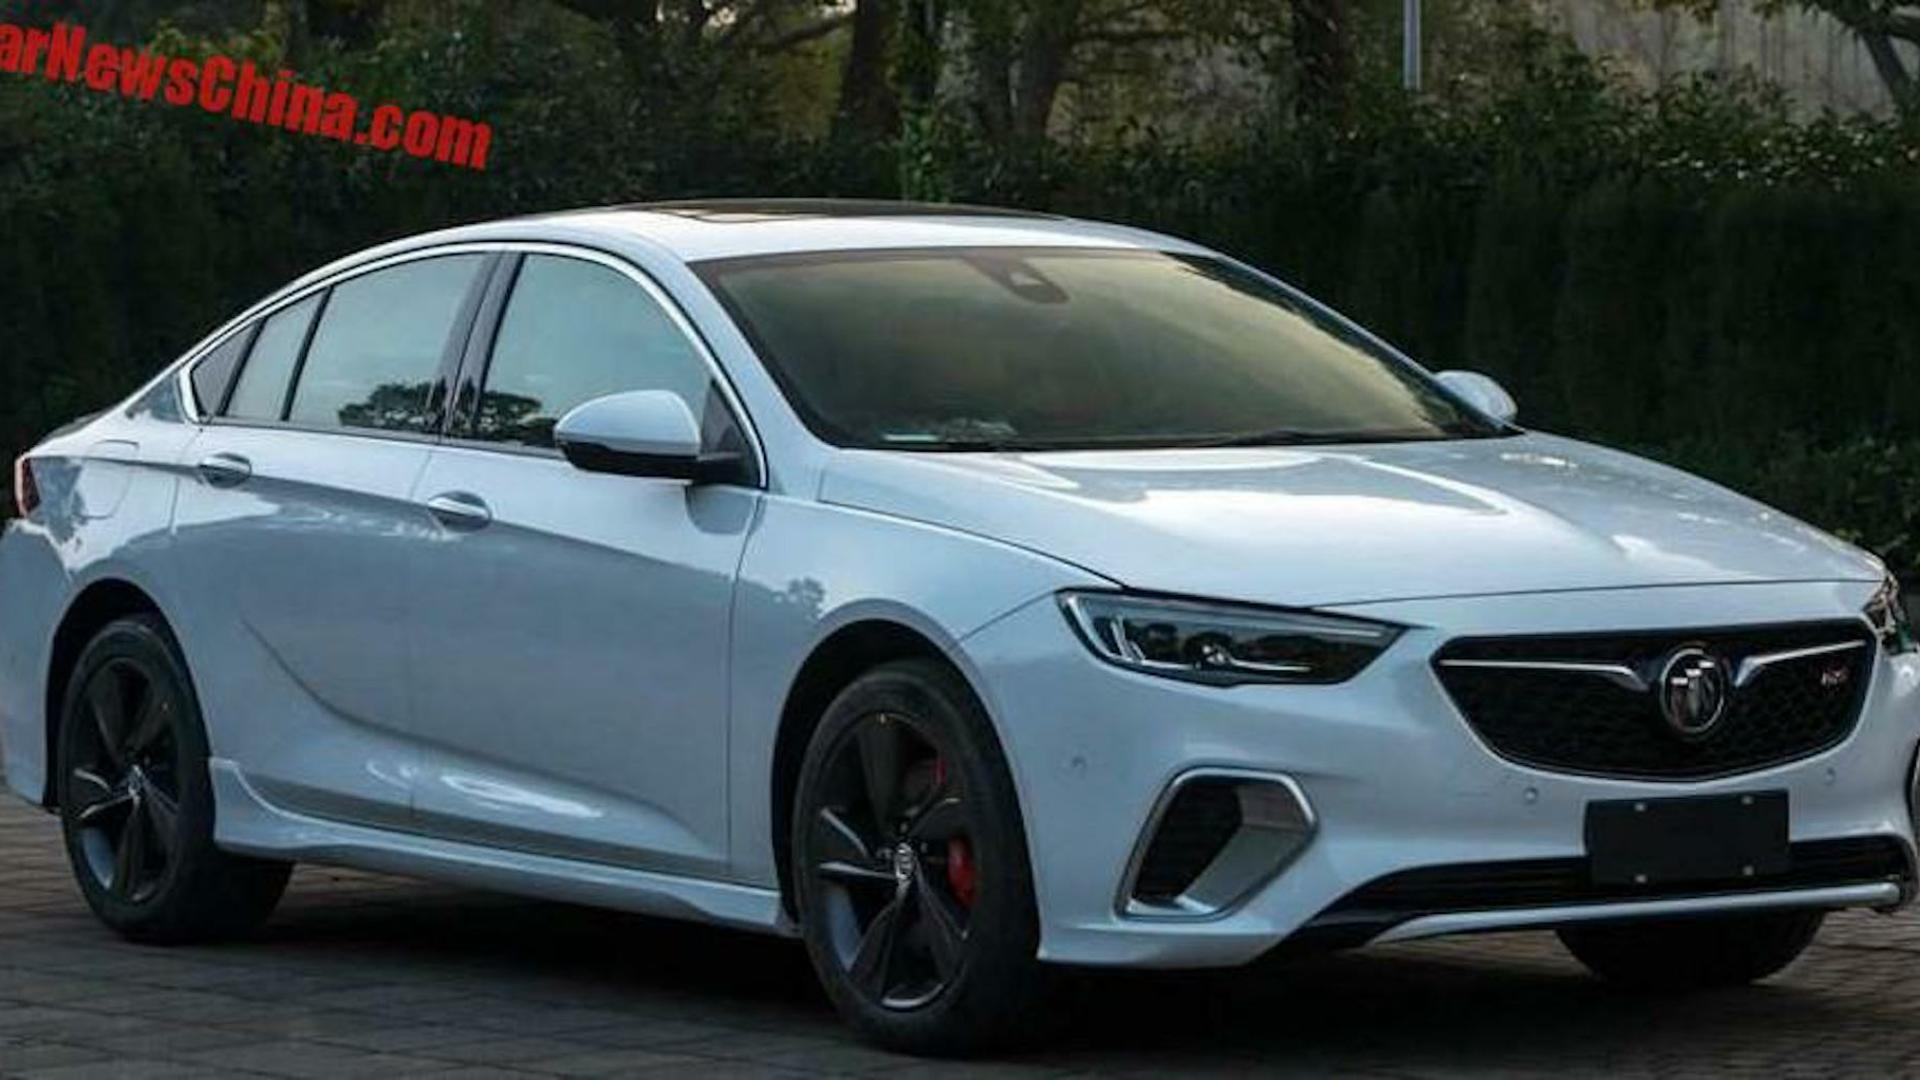 48 A 2020 Buick Regal Gs Coupe Exterior and Interior